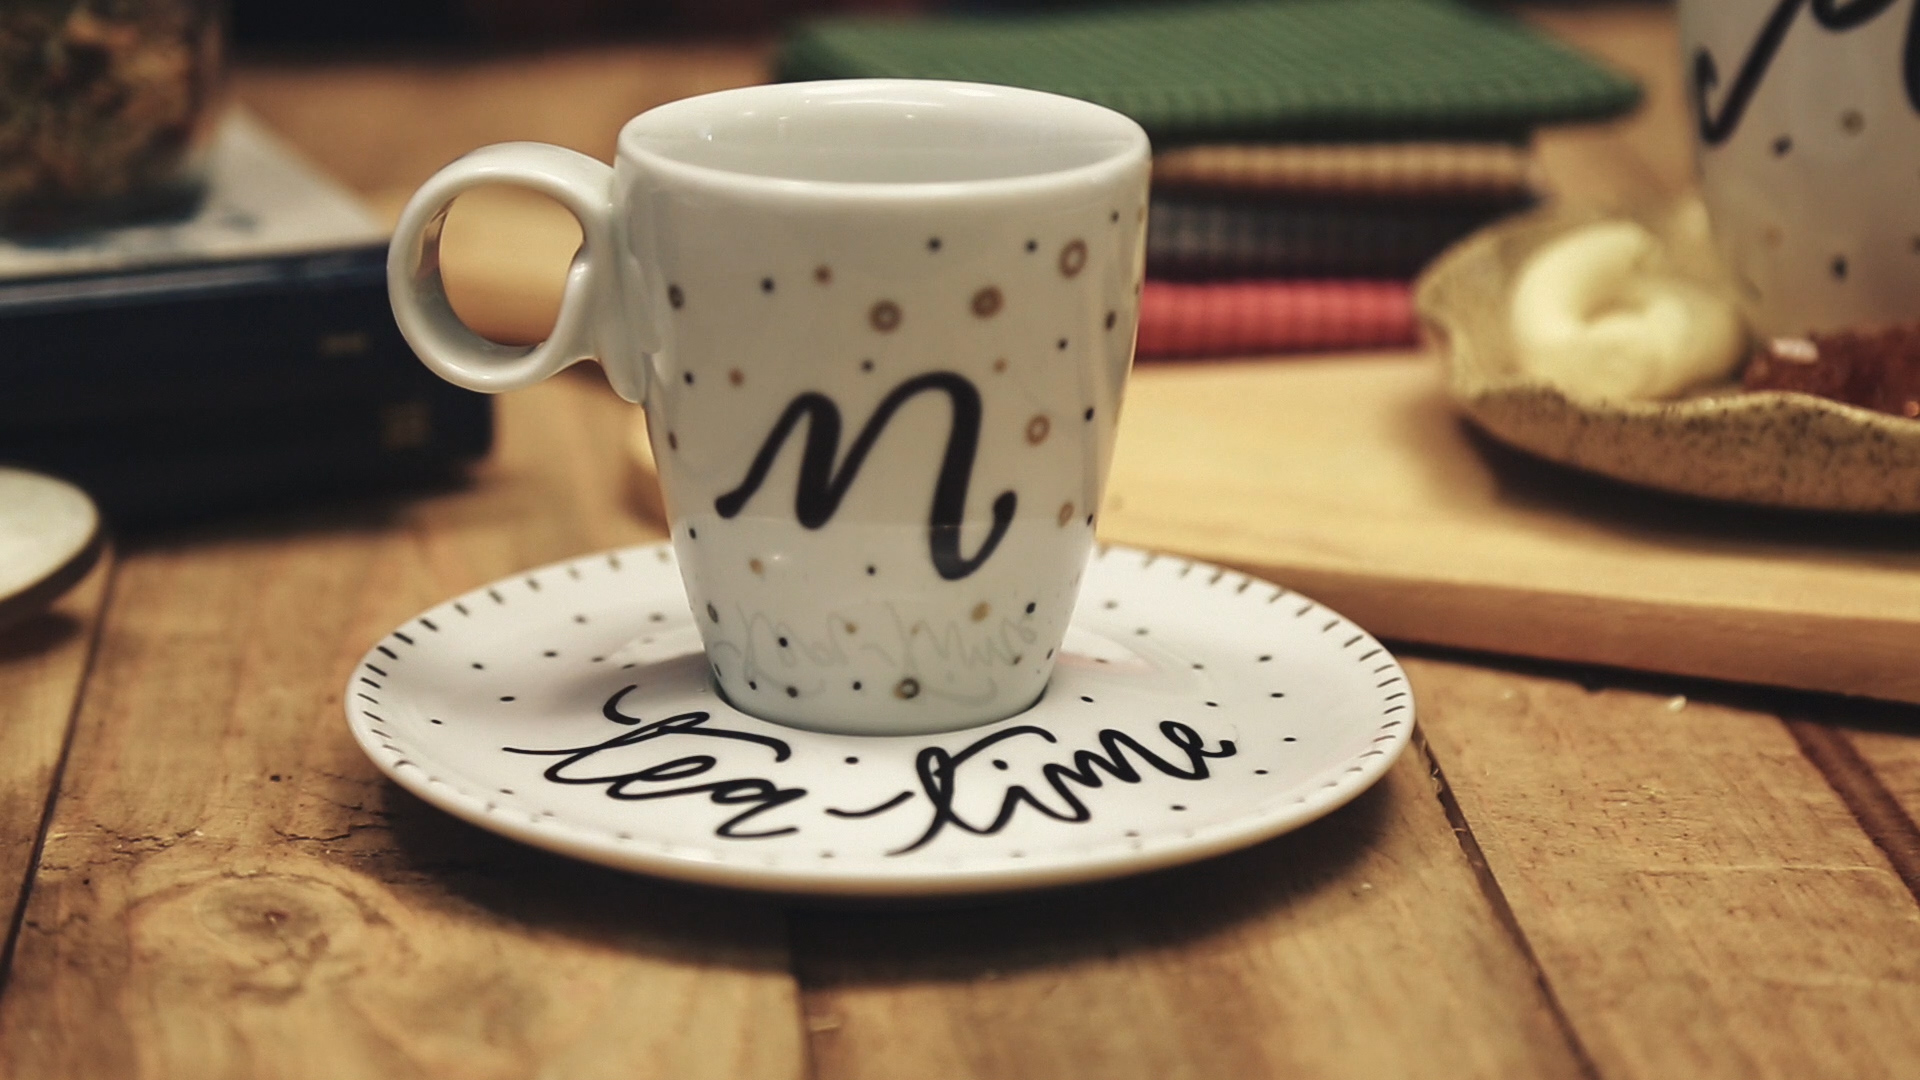 Cómo decorar una taza de té final